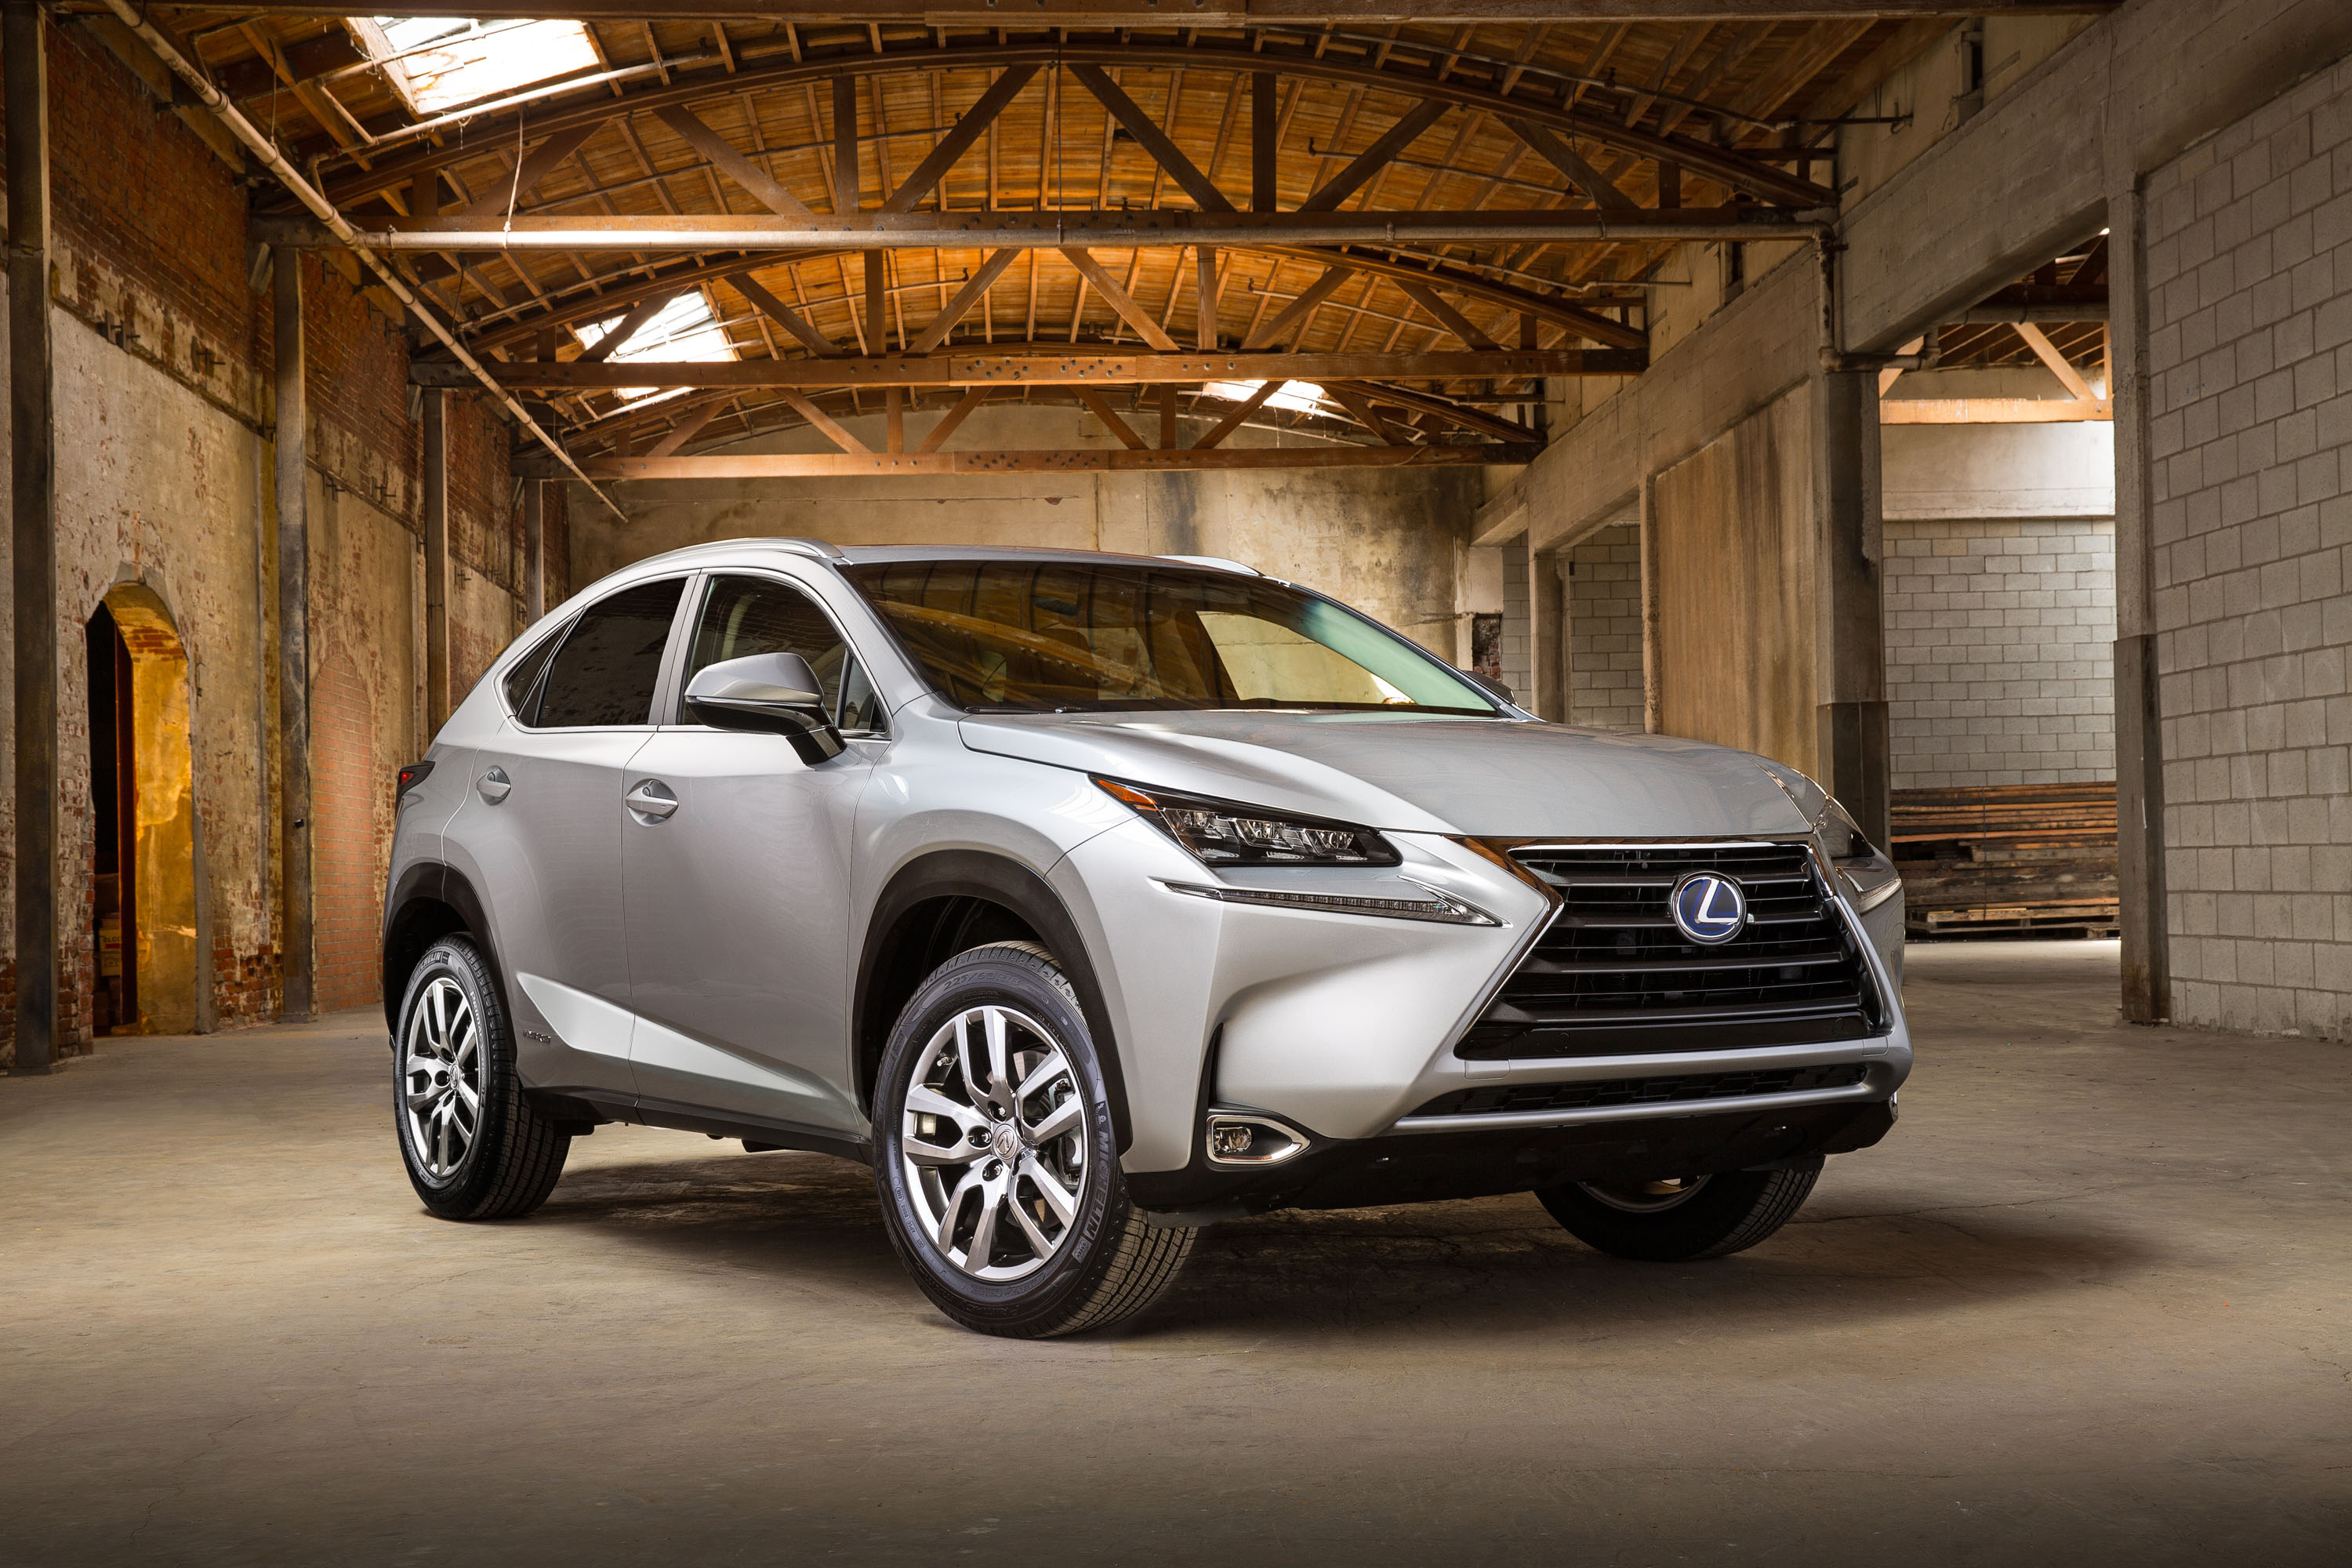 2015 Lexus NX 300h 001 All New Lexus NX Launches with Brand's First Turbo Powertrain